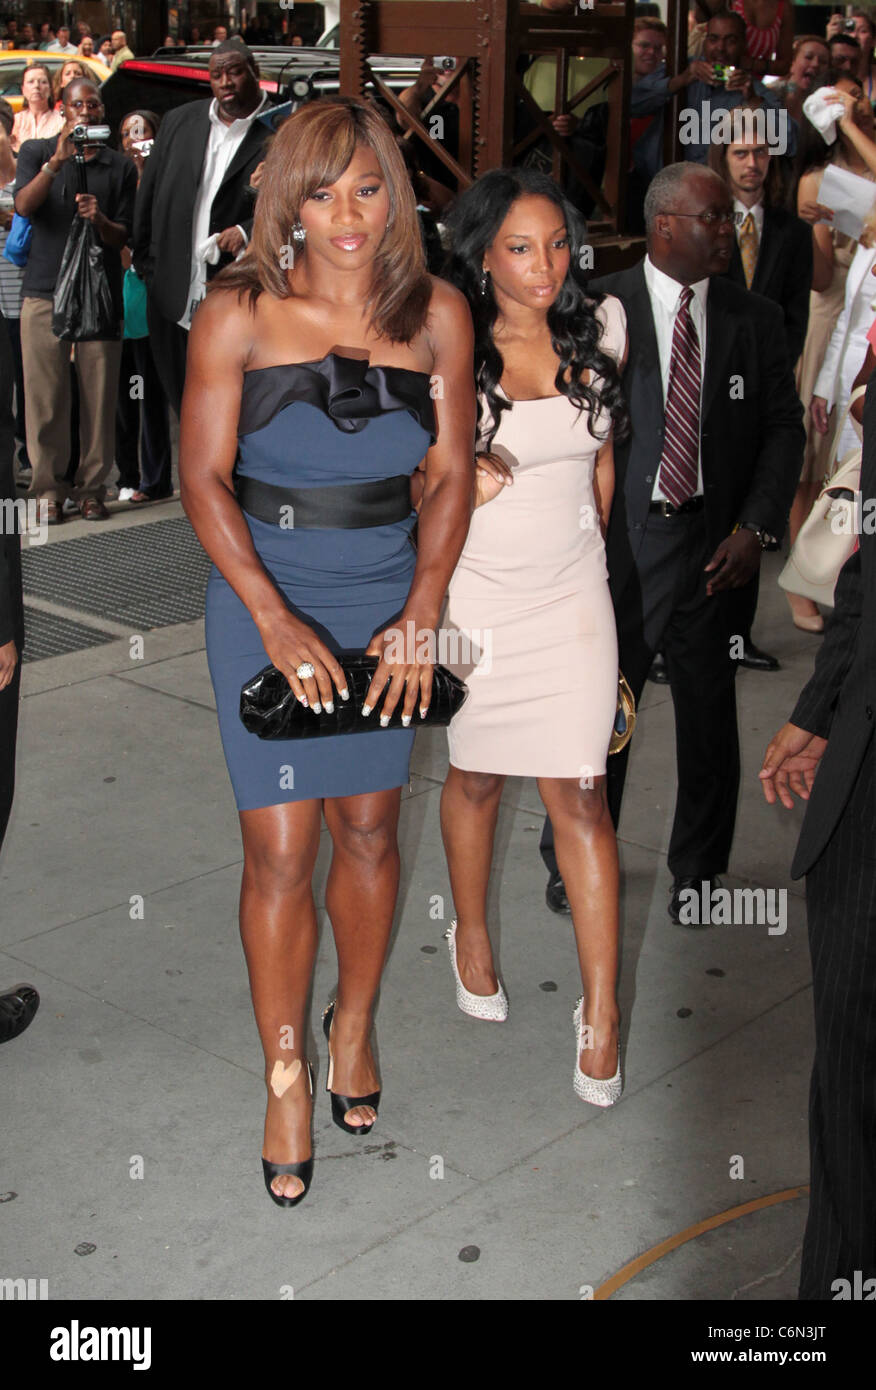 Serena Williams The Wedding Of LaLa Vasquez And Carmelo Anthony At Cipriani 42nd Street New York City USA